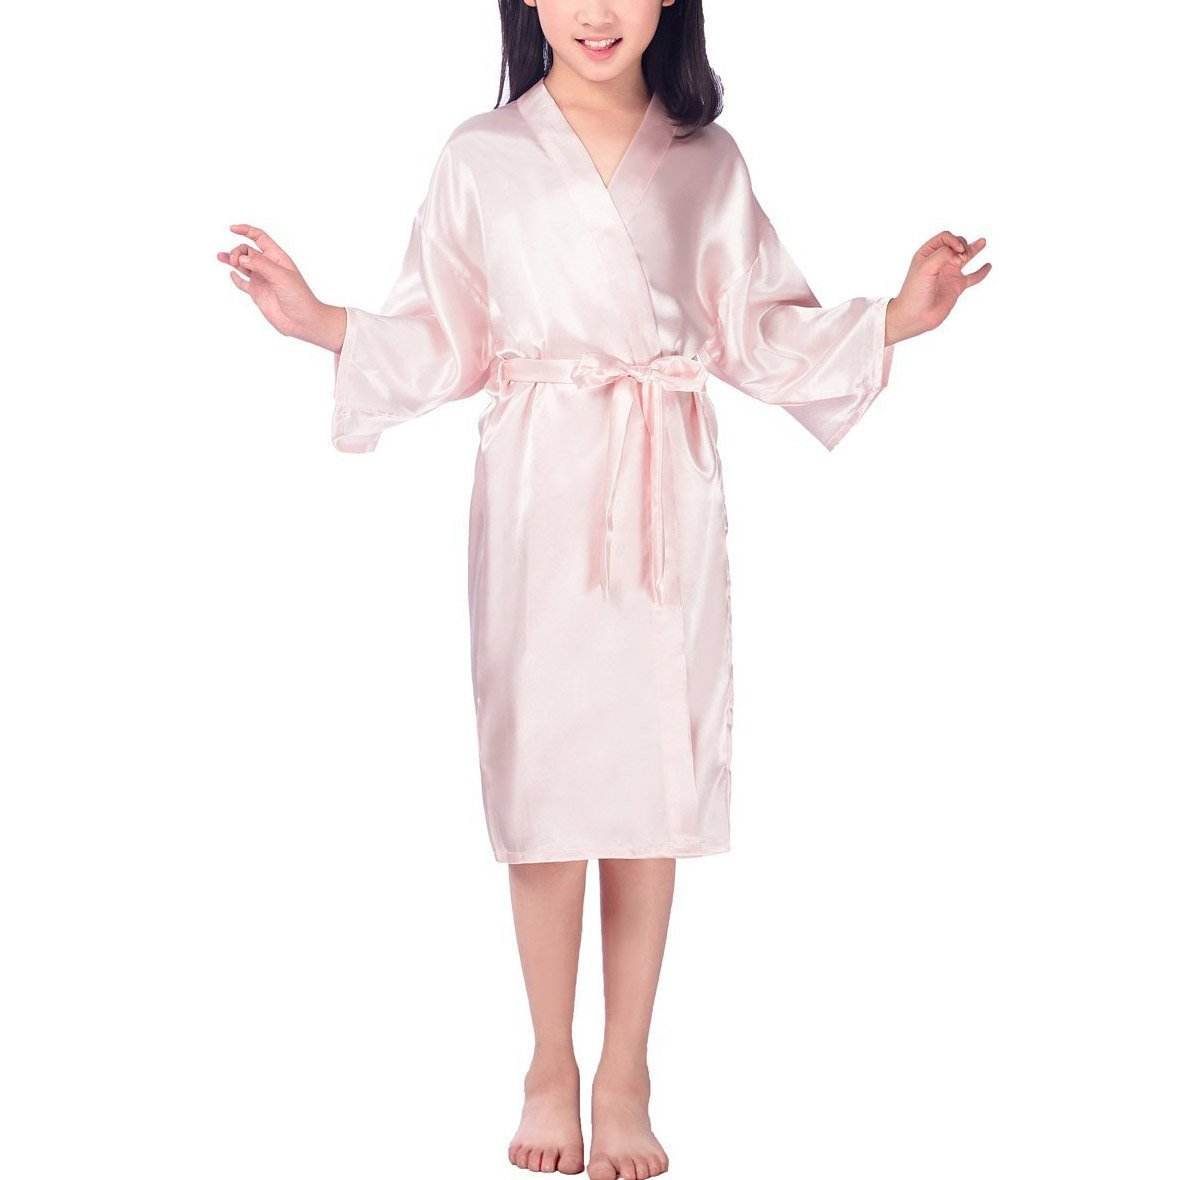 UQ Girls' Satin Solid Color Robe For Party Wedding Bridesmaid Sleepwear